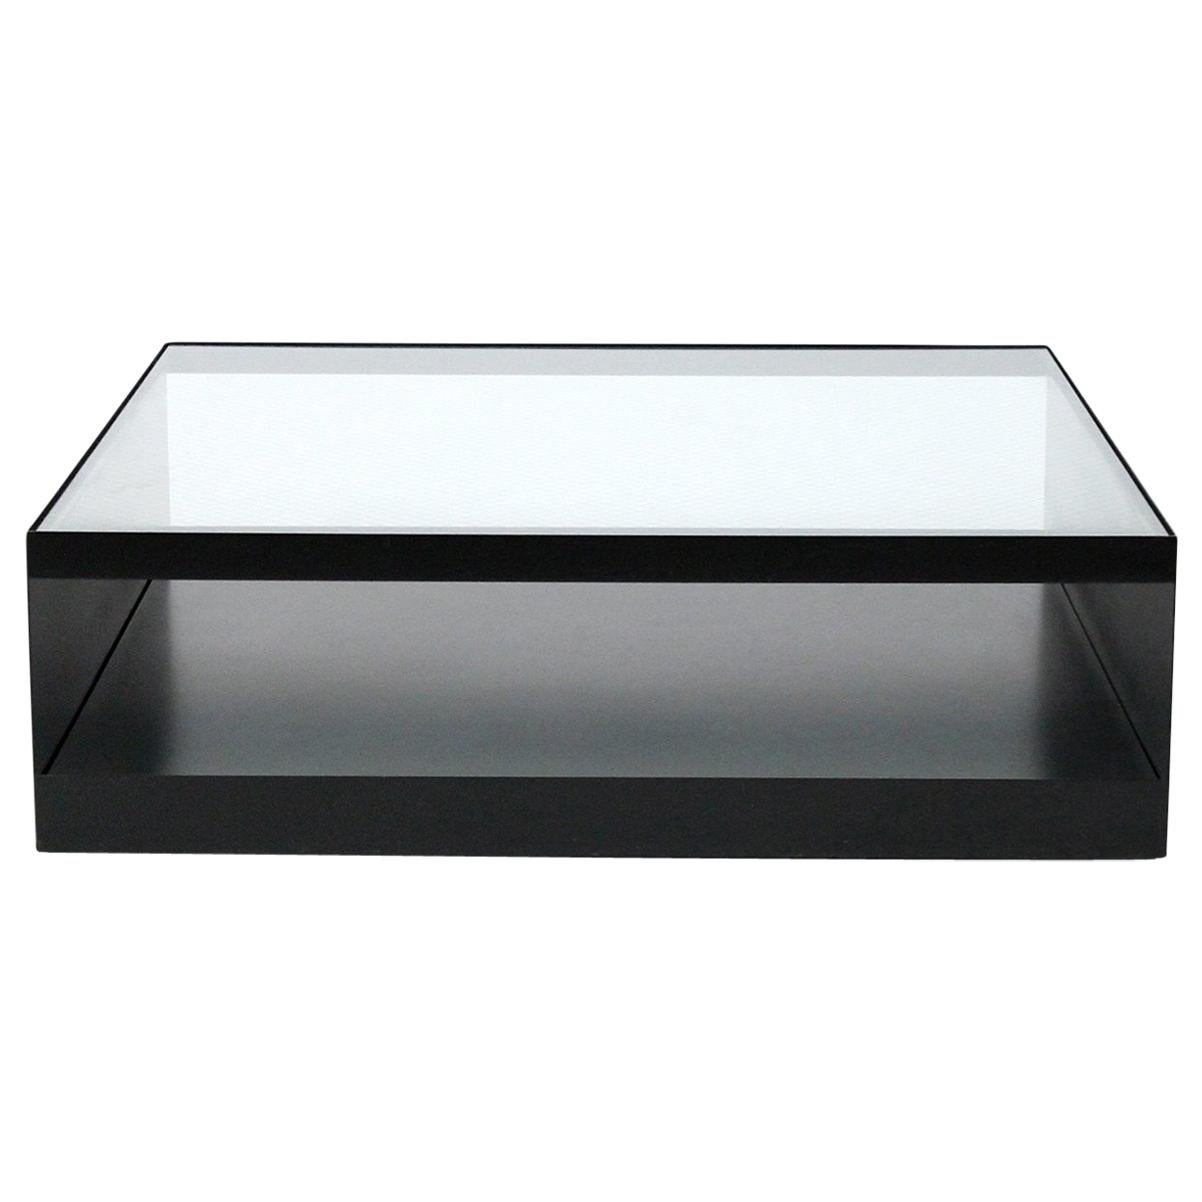 Coffee Table by Joe D'Urso for Knoll